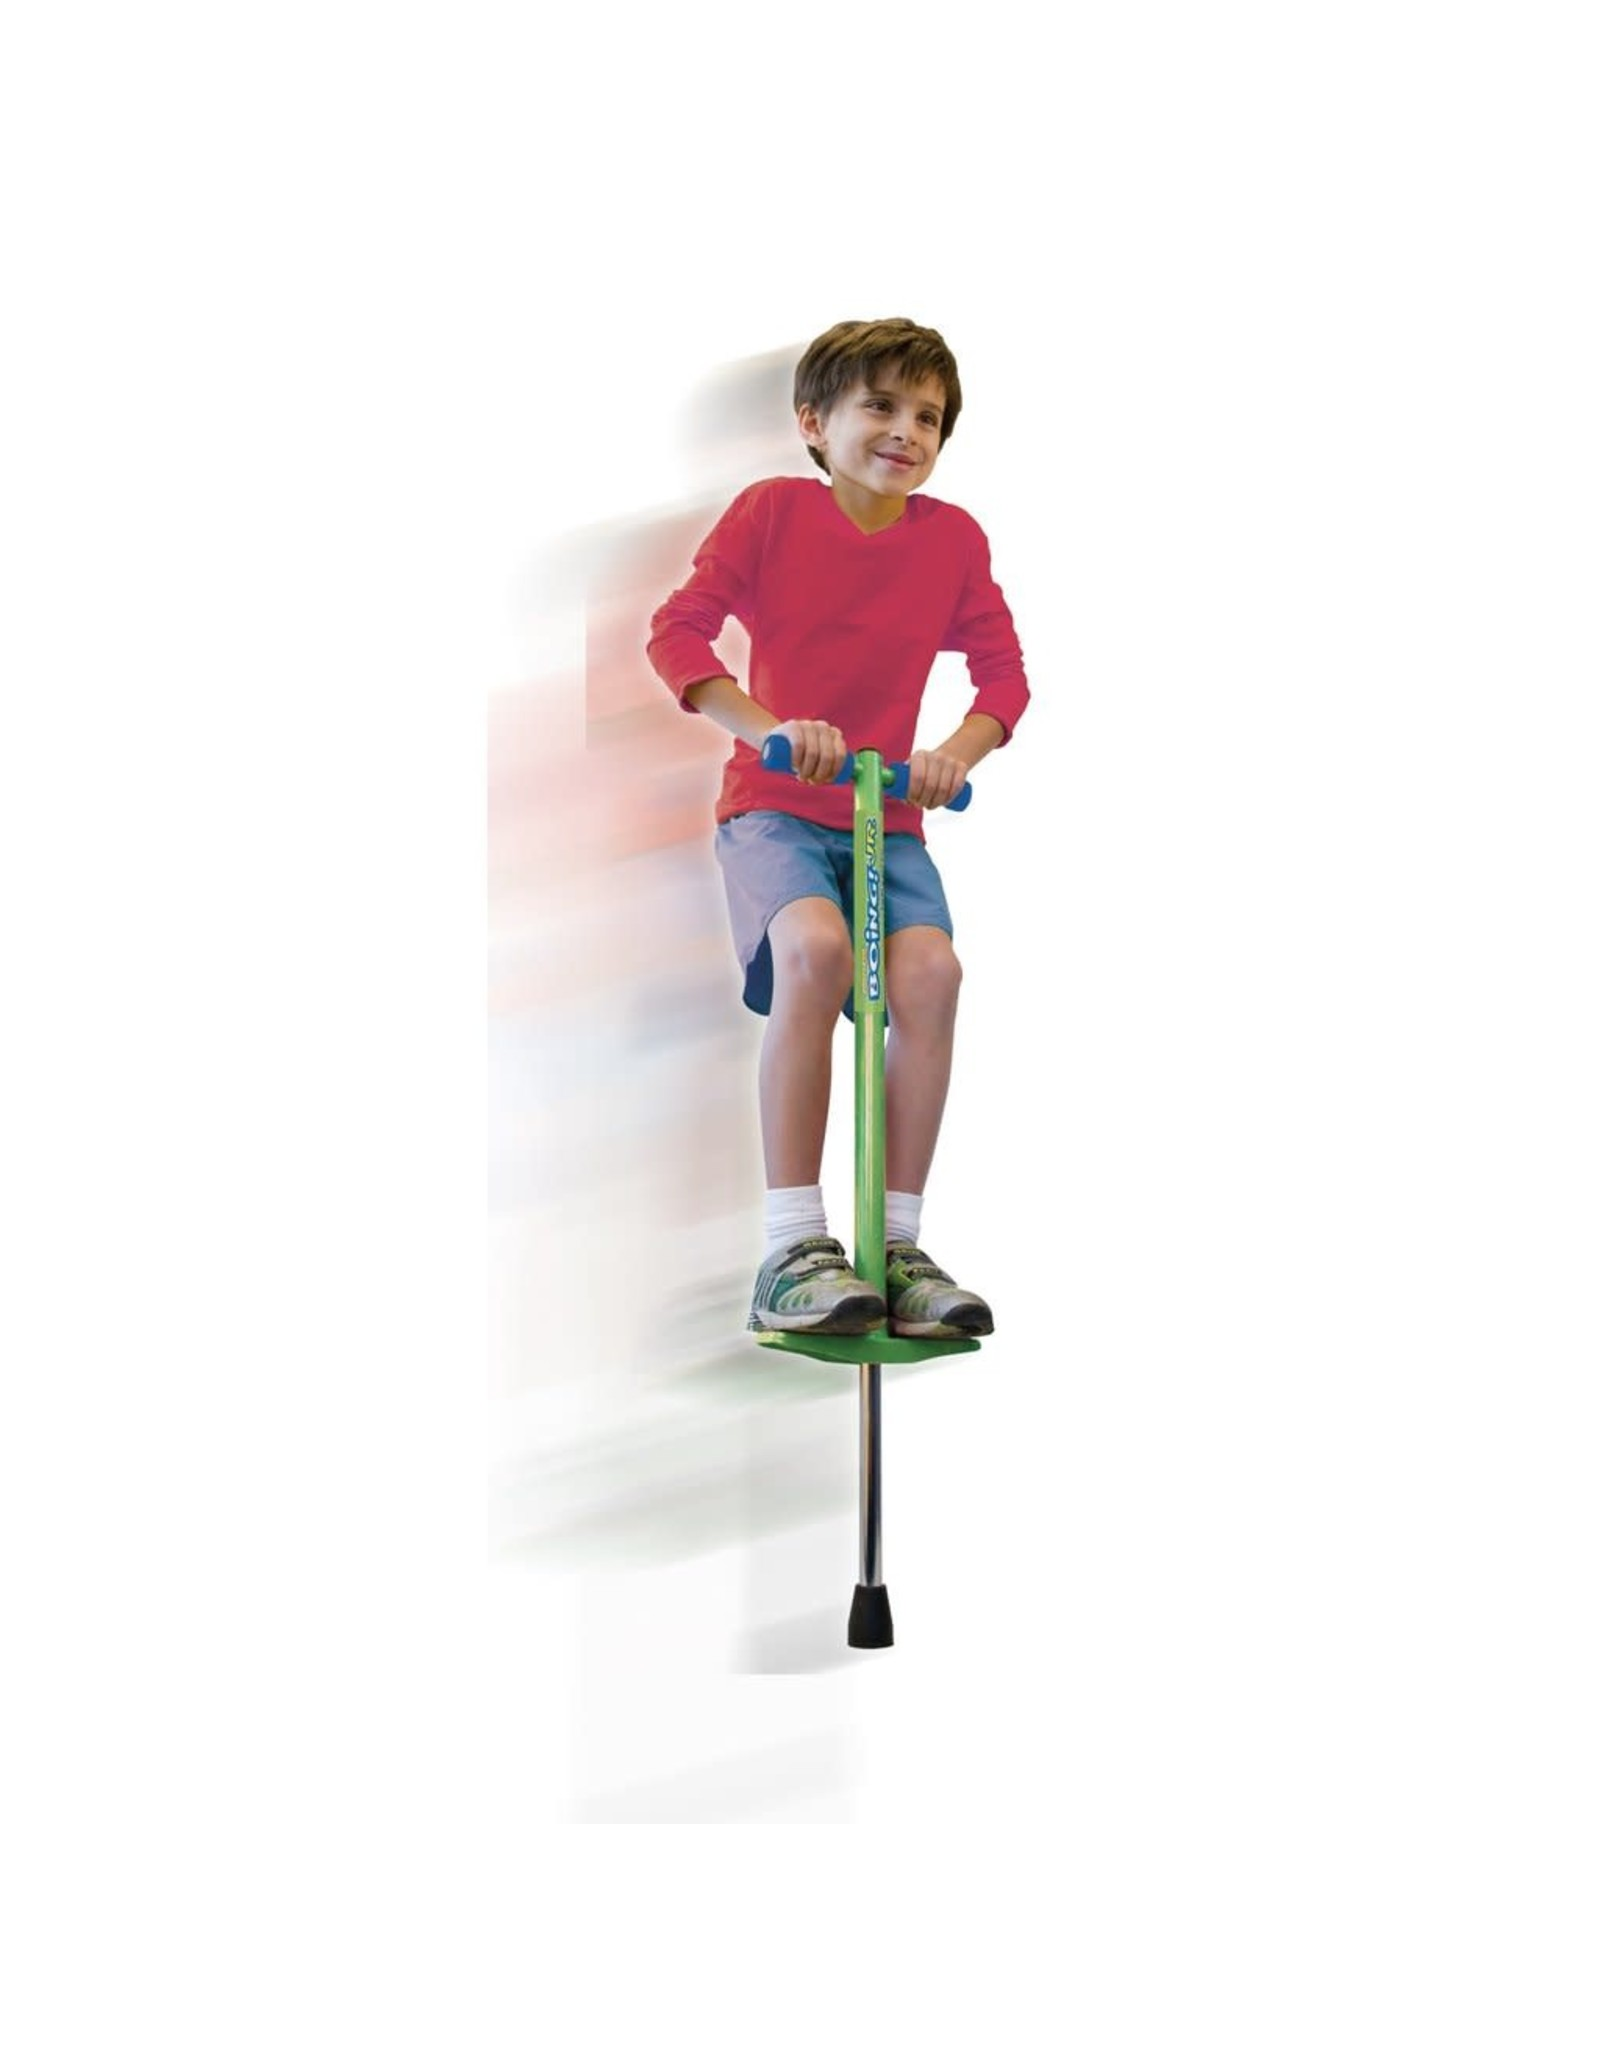 Geospace Pogo Stick Boing Junior 50-90lbs.